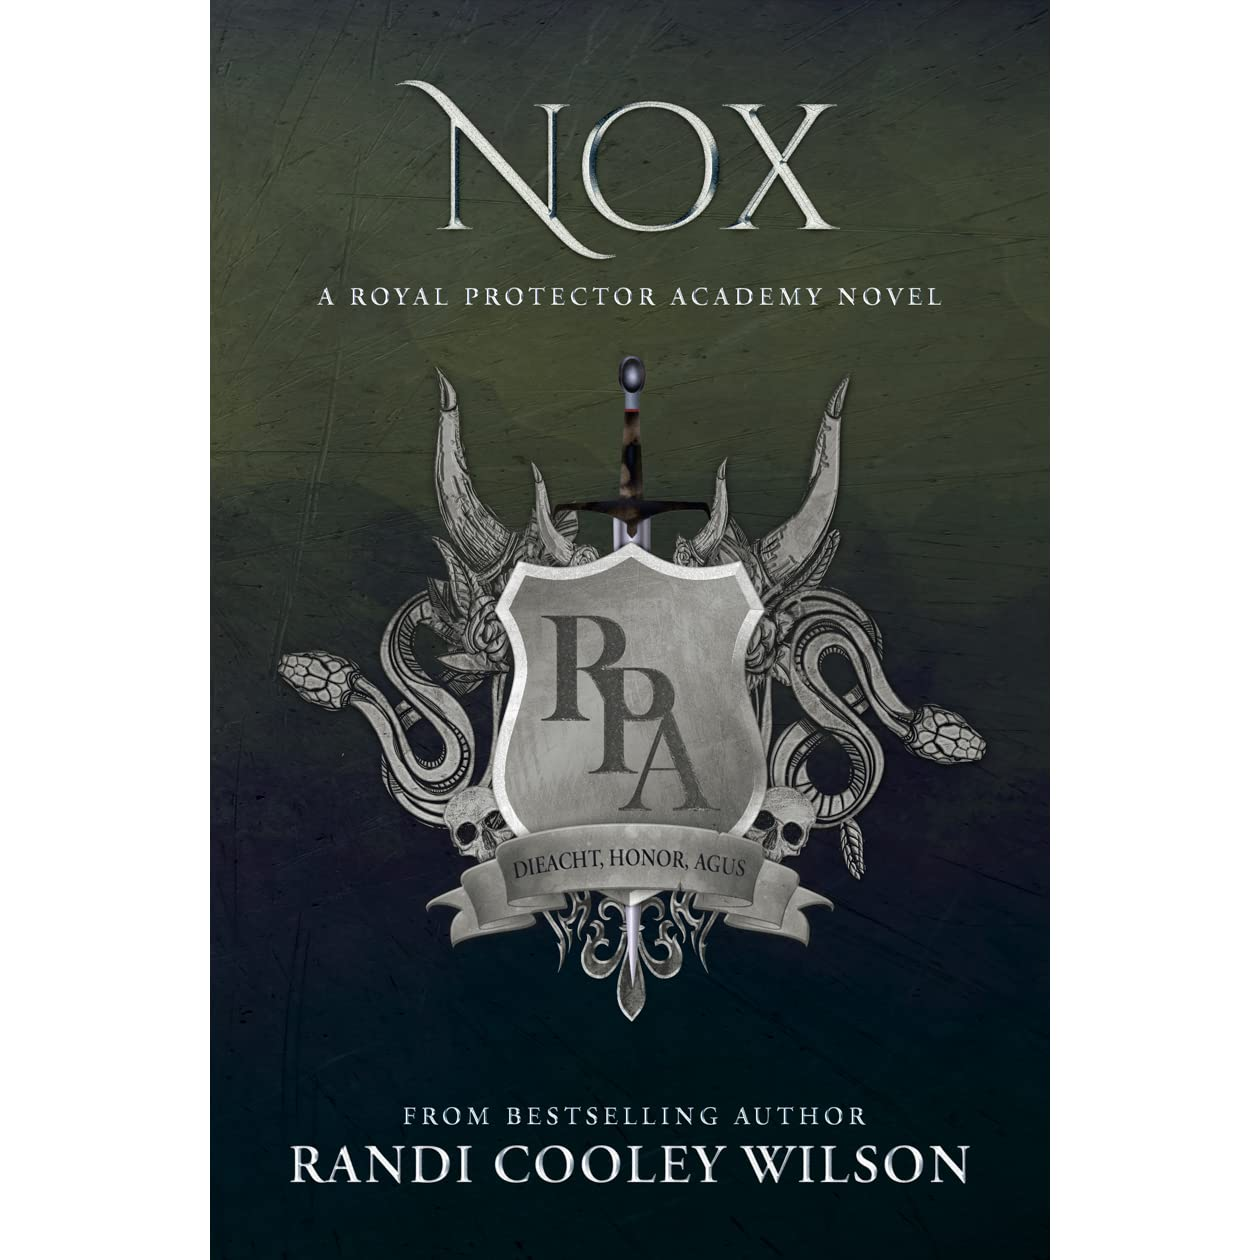 Nox (The Royal Protector Academy #3) by Randi Cooley Wilson